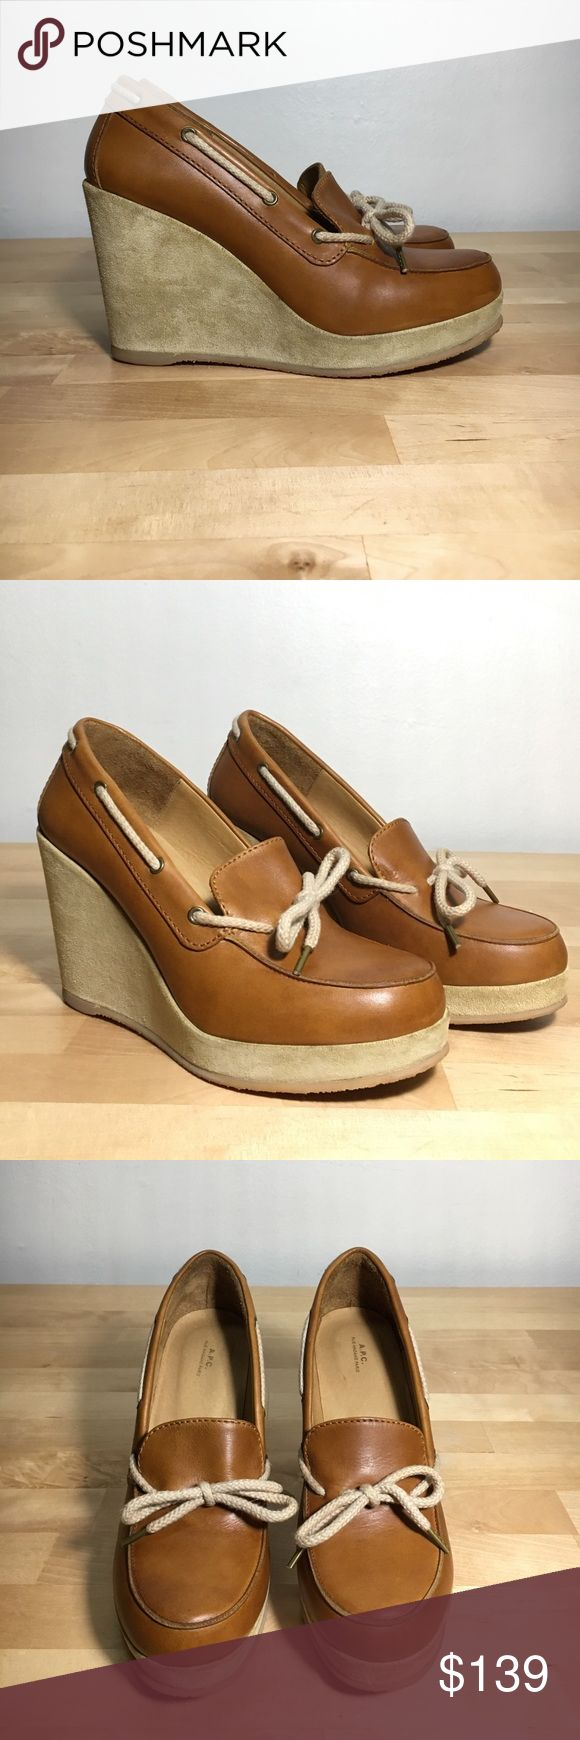 Platform Wedge Loafer Pretty wedge loafers from the Parisian brand A.P.C. Camel brown leather and beige suede wedge. Fully lined in leather. Made in Portugal. Excellent condition. A.P.C. Shoes Wedges